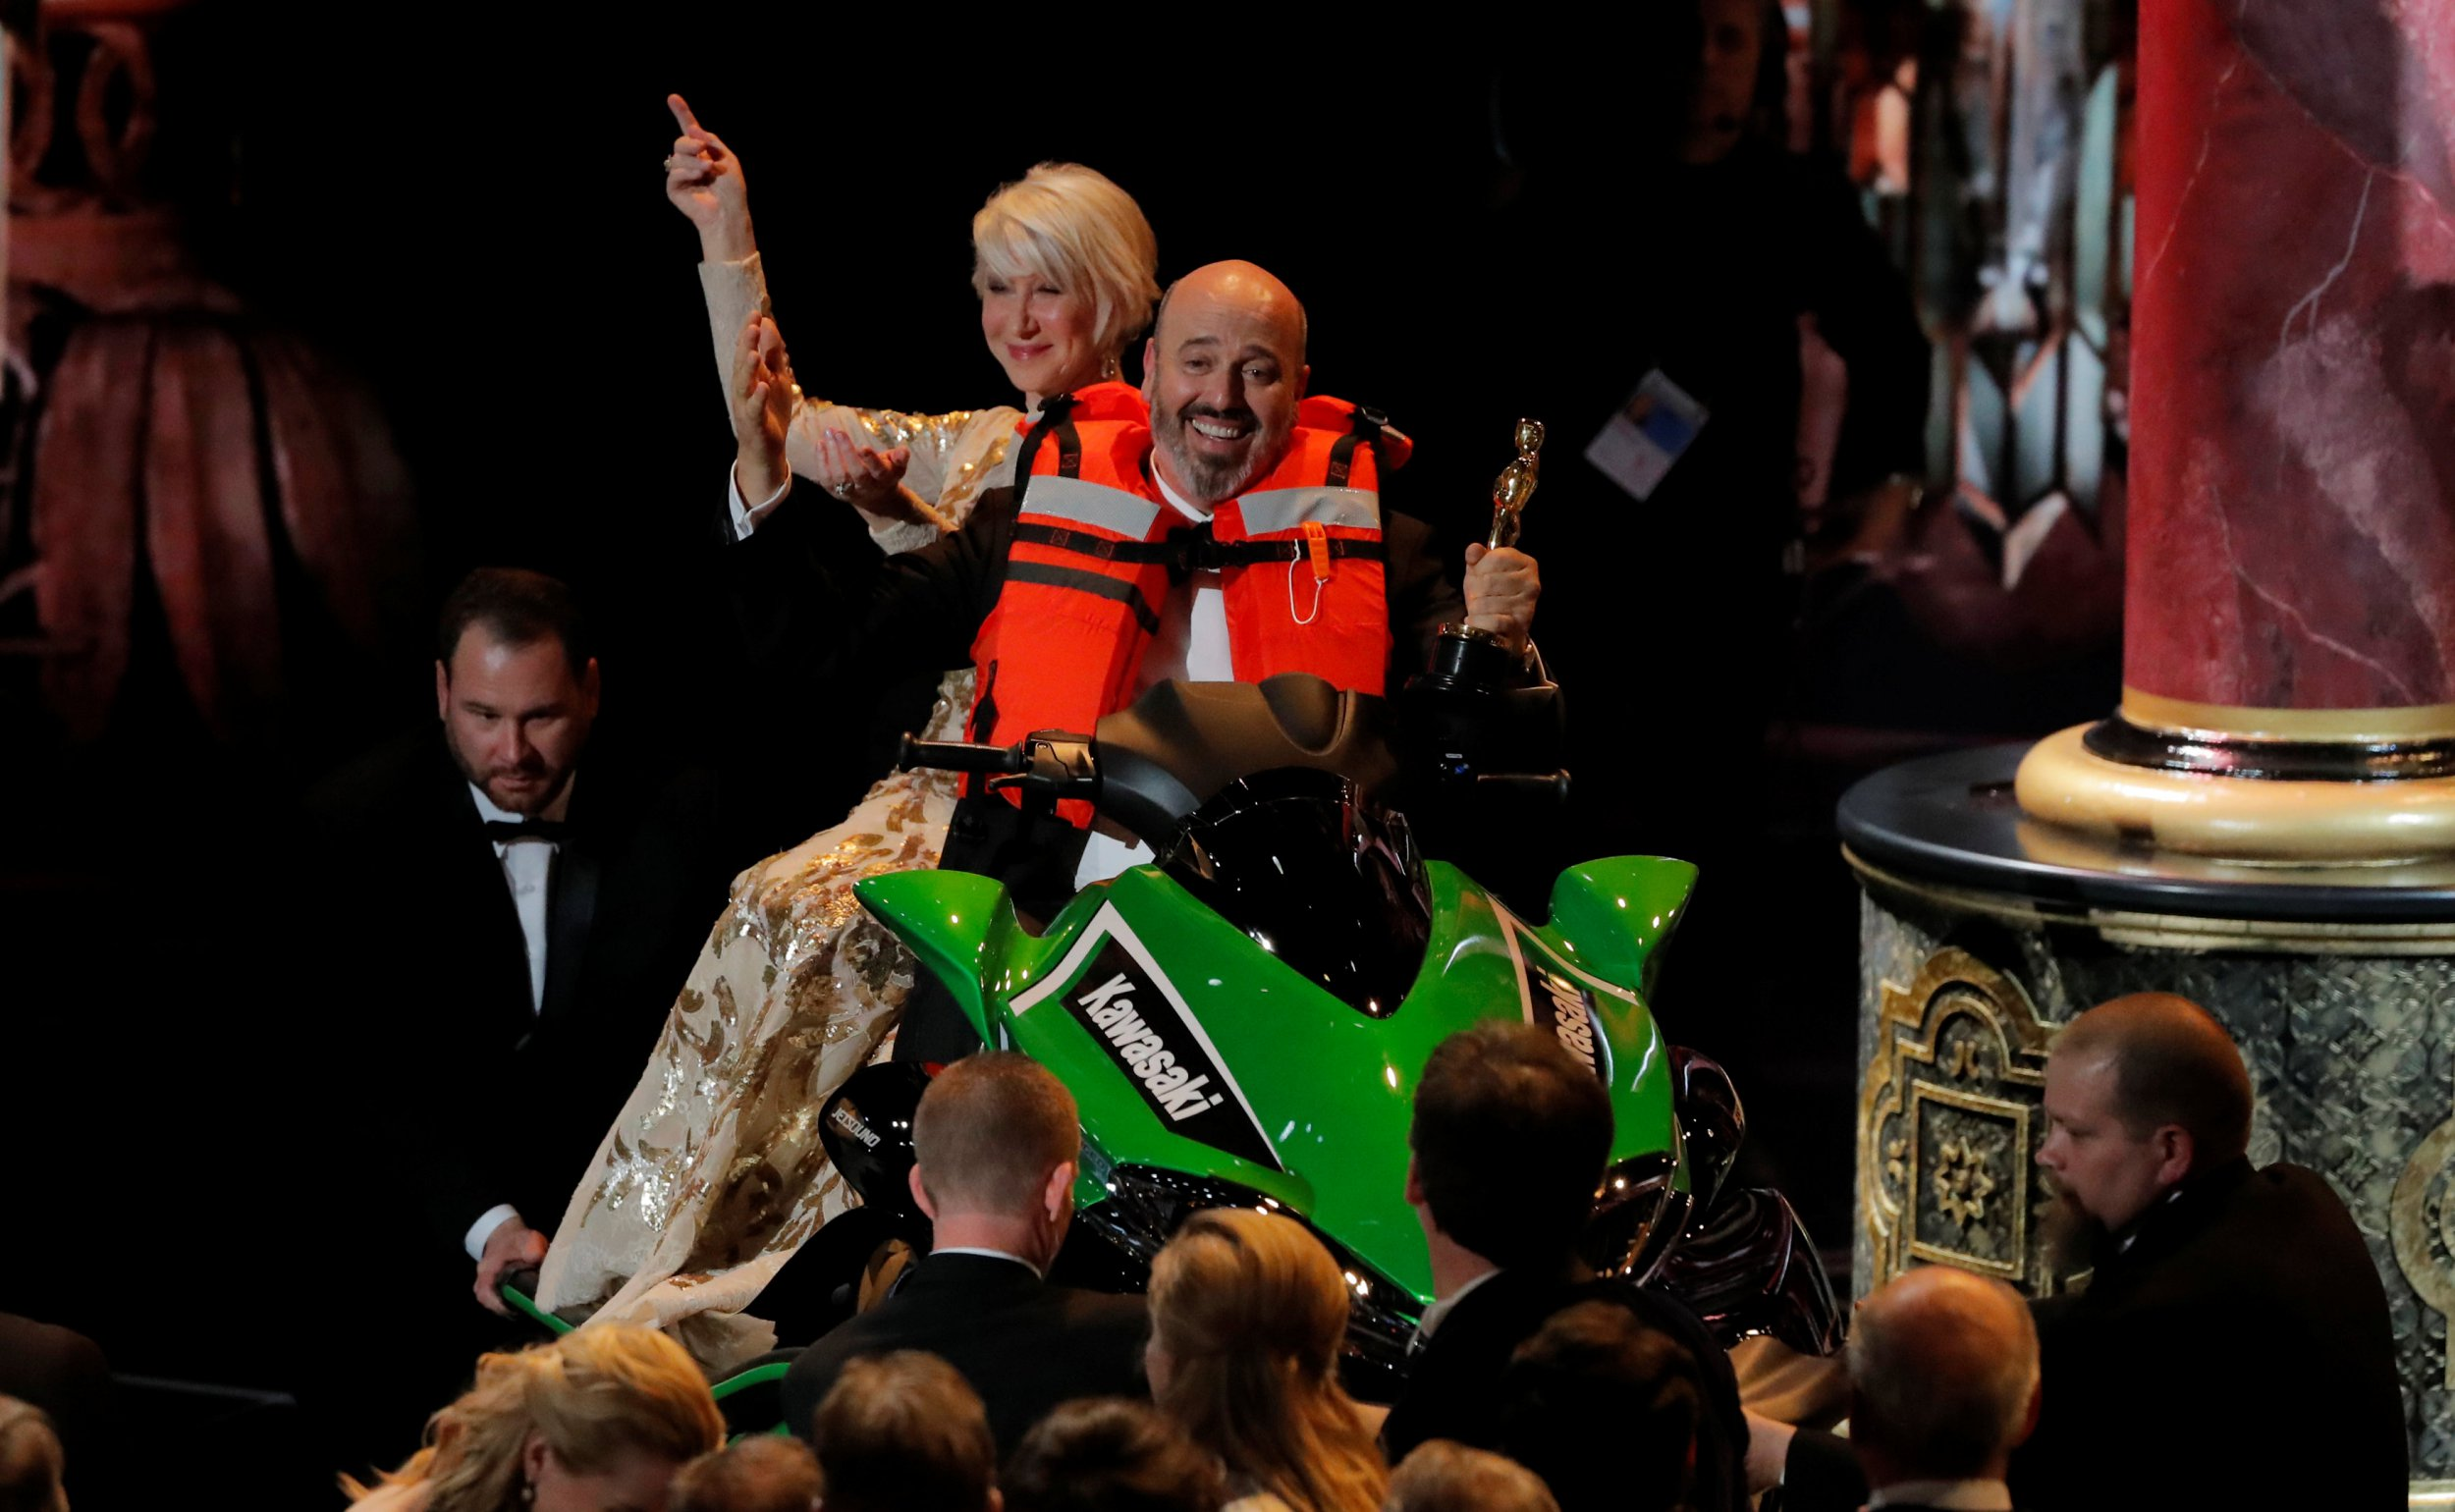 Someone actually won the Oscars jet ski after Jimmy Kimmel offered it up as a prize